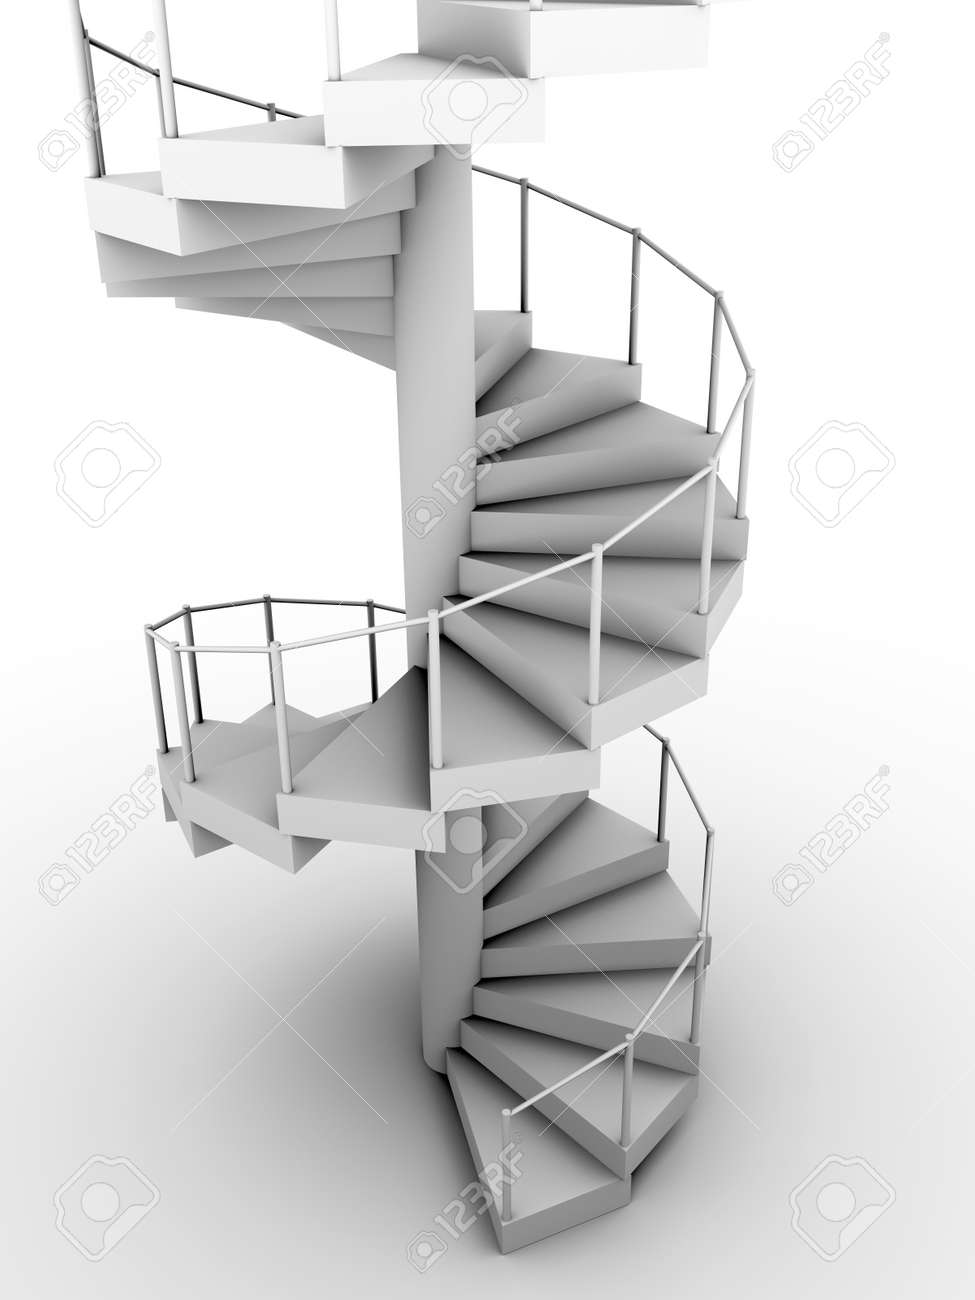 Snail Staircase In White. Circular Construction. 3d Render Stock Photo    12390601